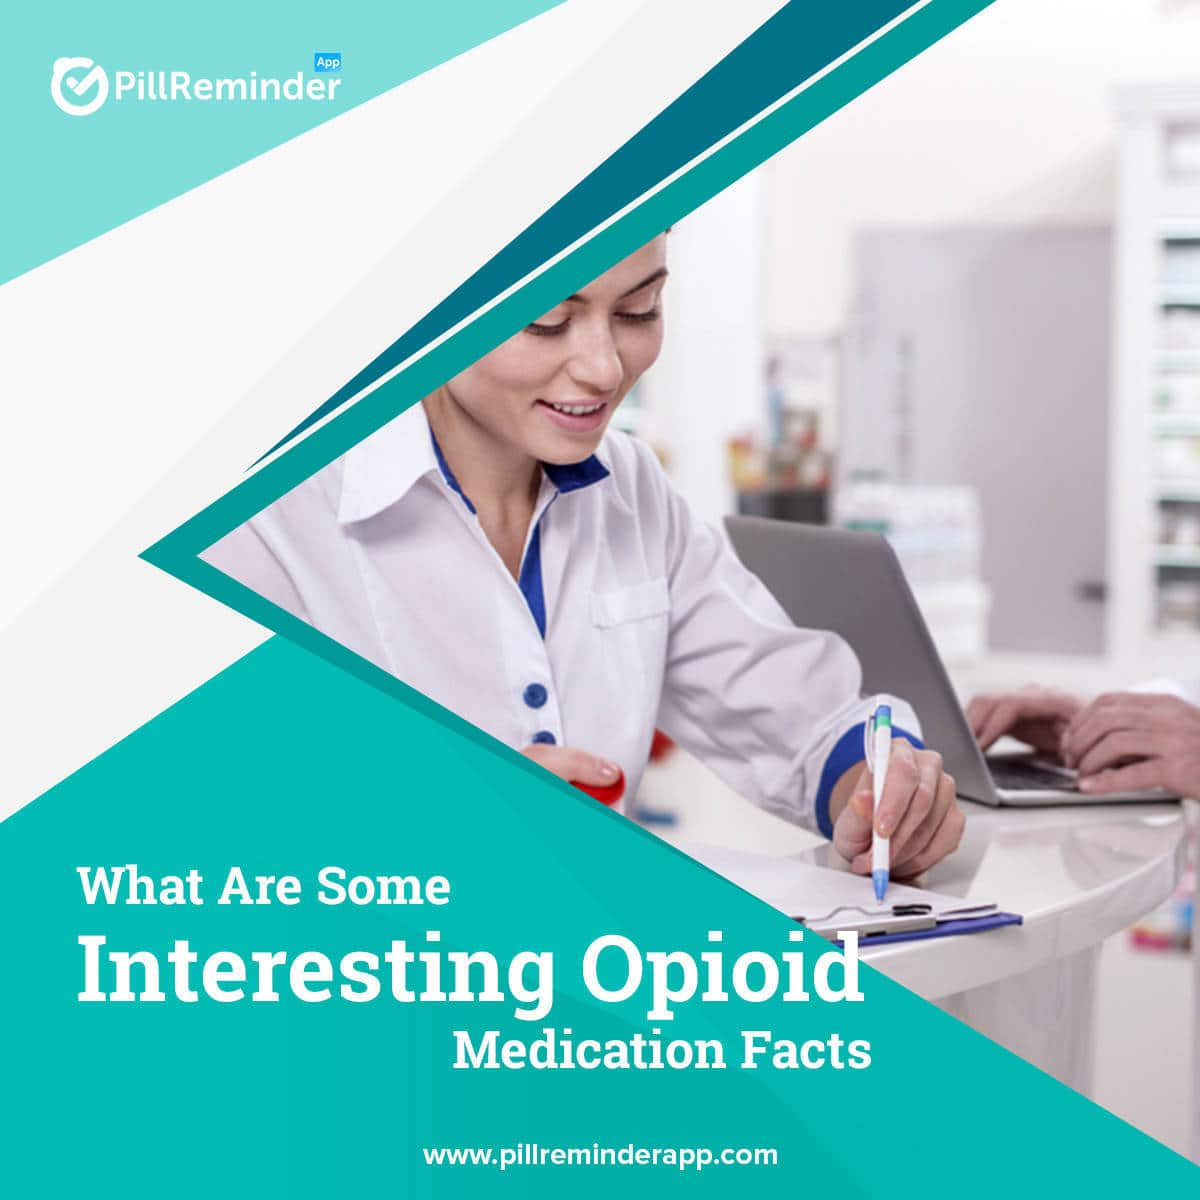 What Are Some Interesting Opioid Medication Facts